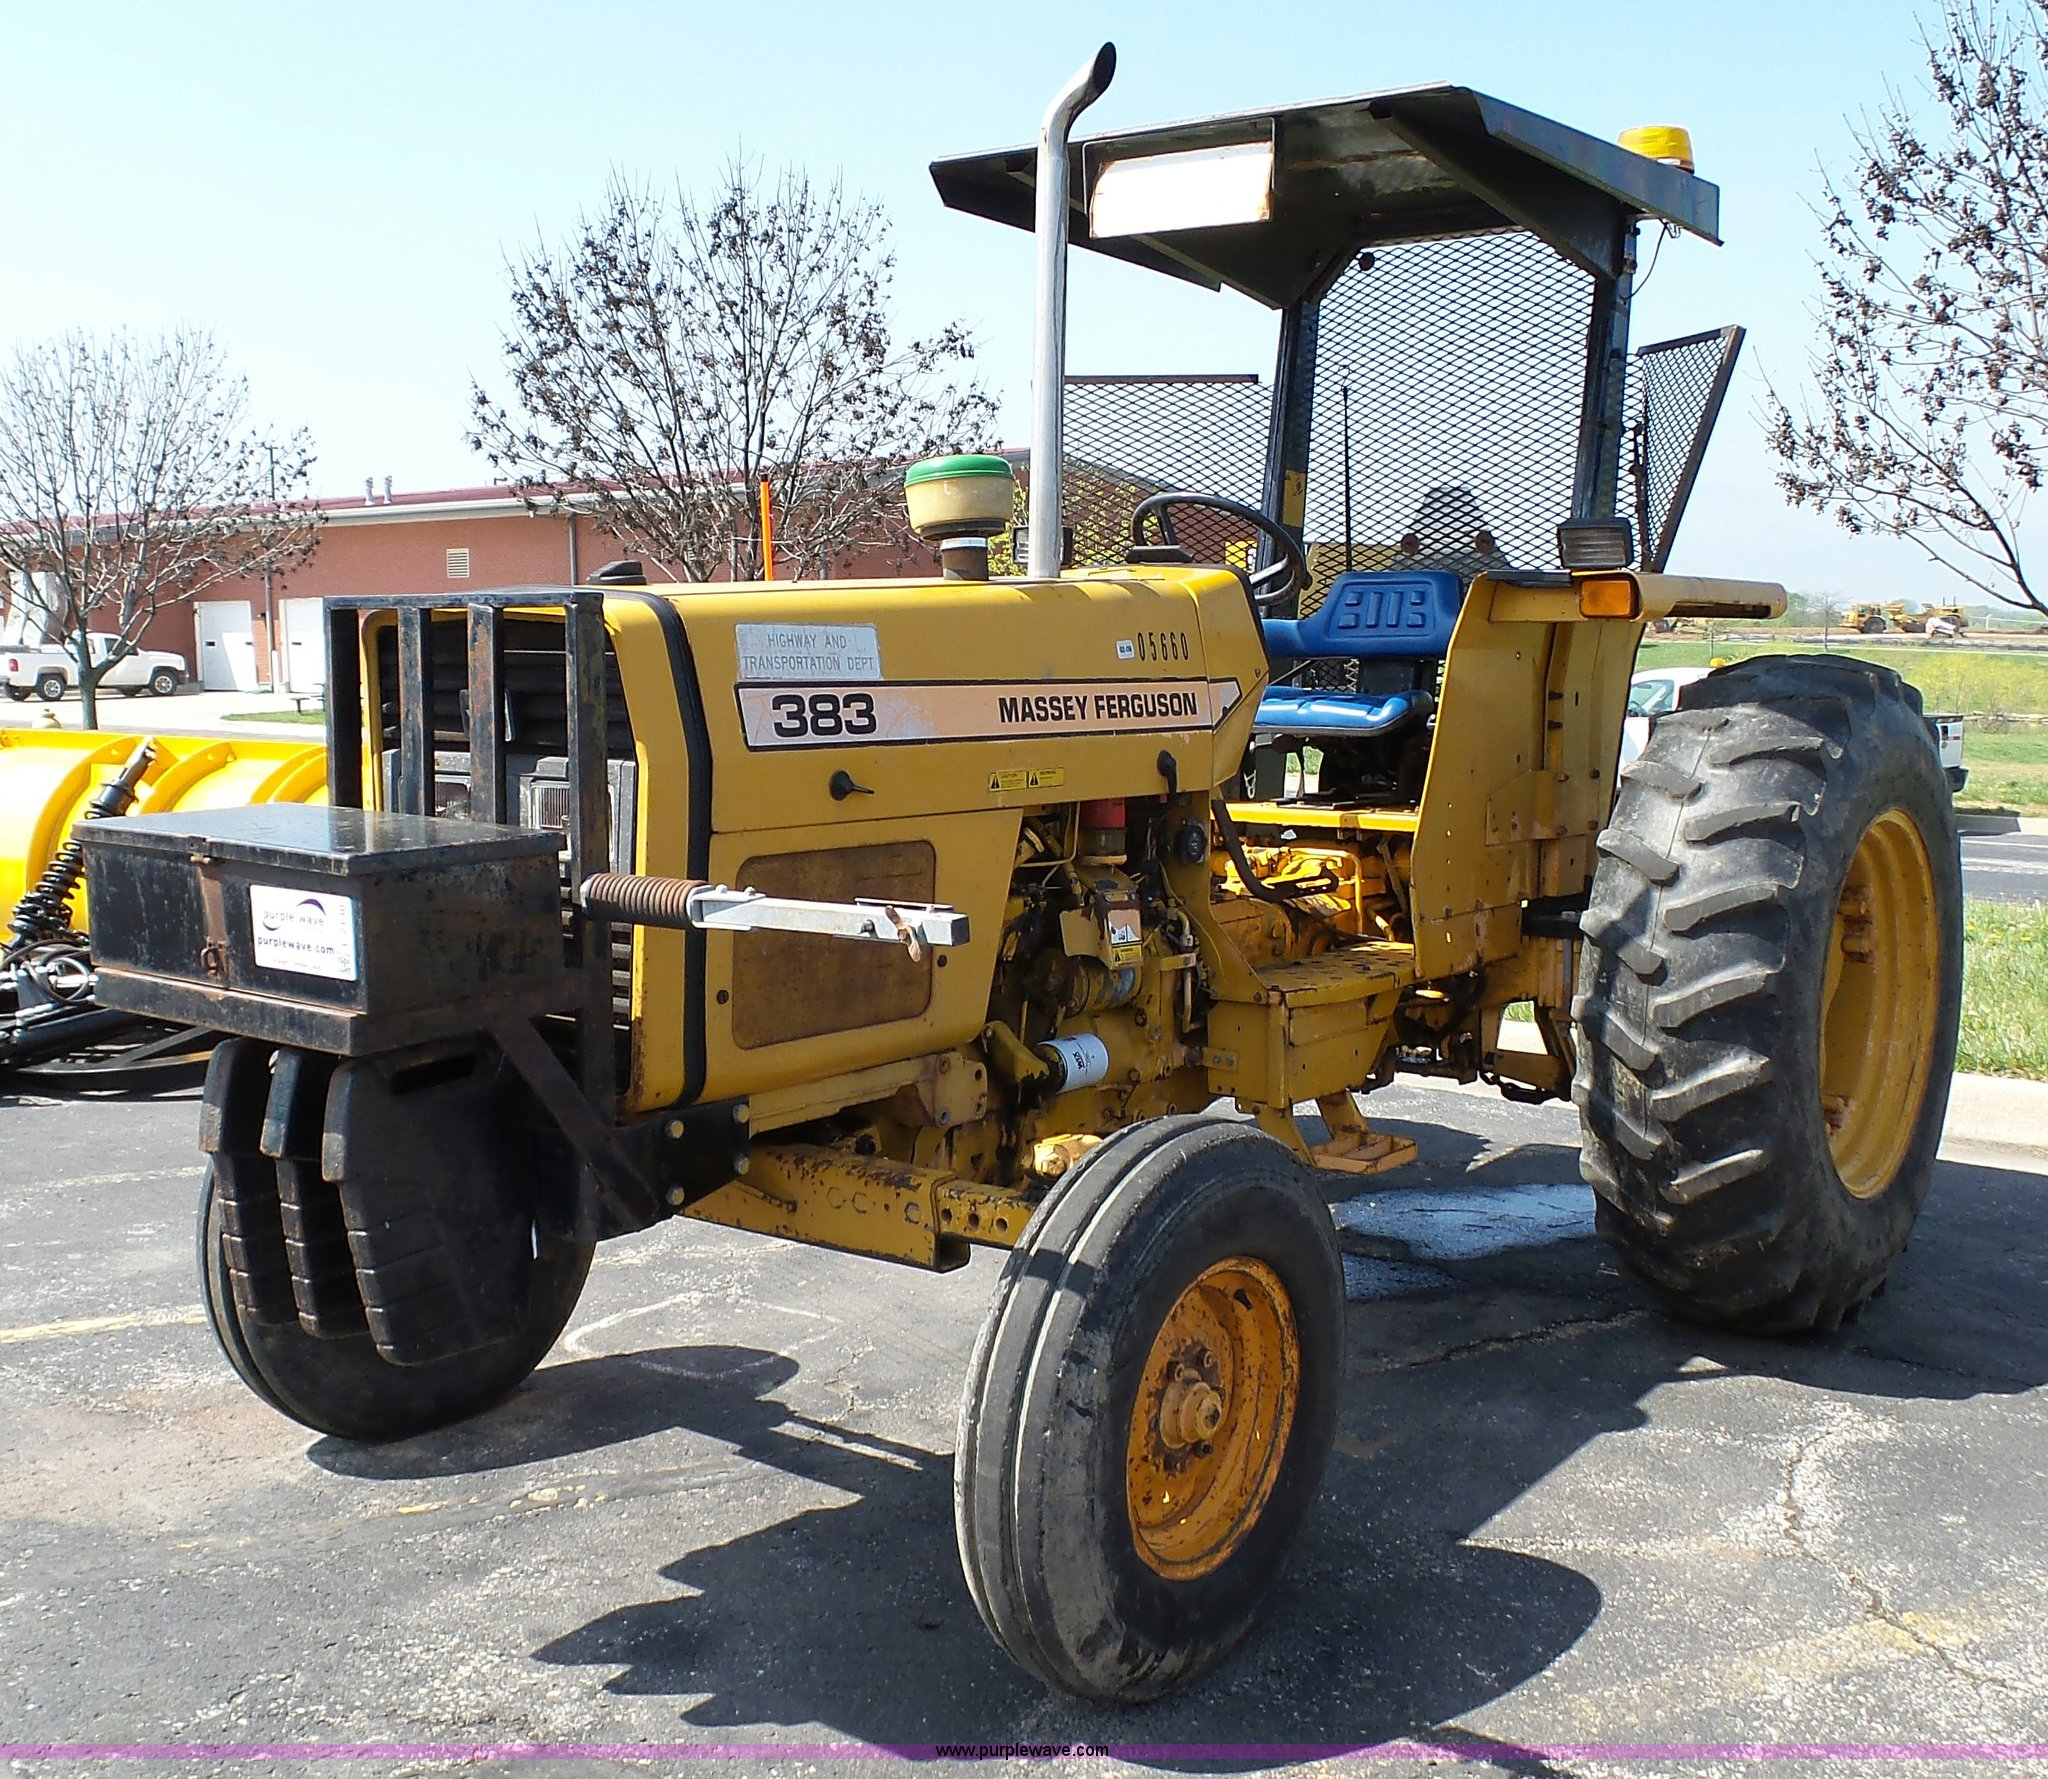 1994 Massey-Ferguson 383 tractor | Item L2130 | SOLD! June 7